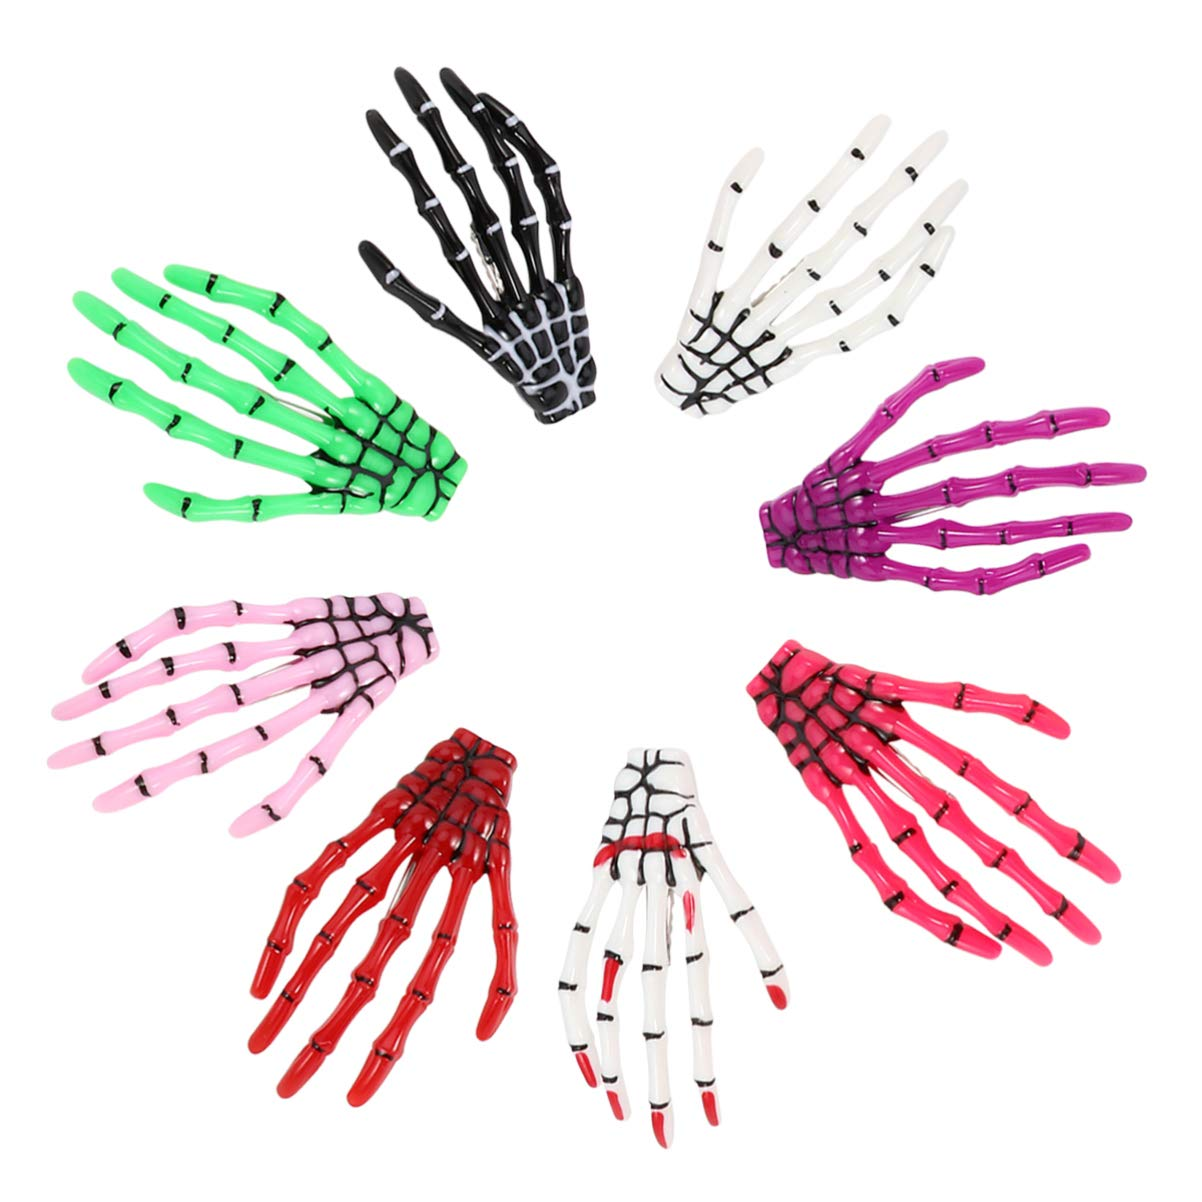 PIXNOR Halloween Hairpins, 8Pcs Skeleton Claws Hand Hair Clips, Ghost Claw Horror Barrette, Fluorescent Hair Accessories for Halloween Cosplay Party